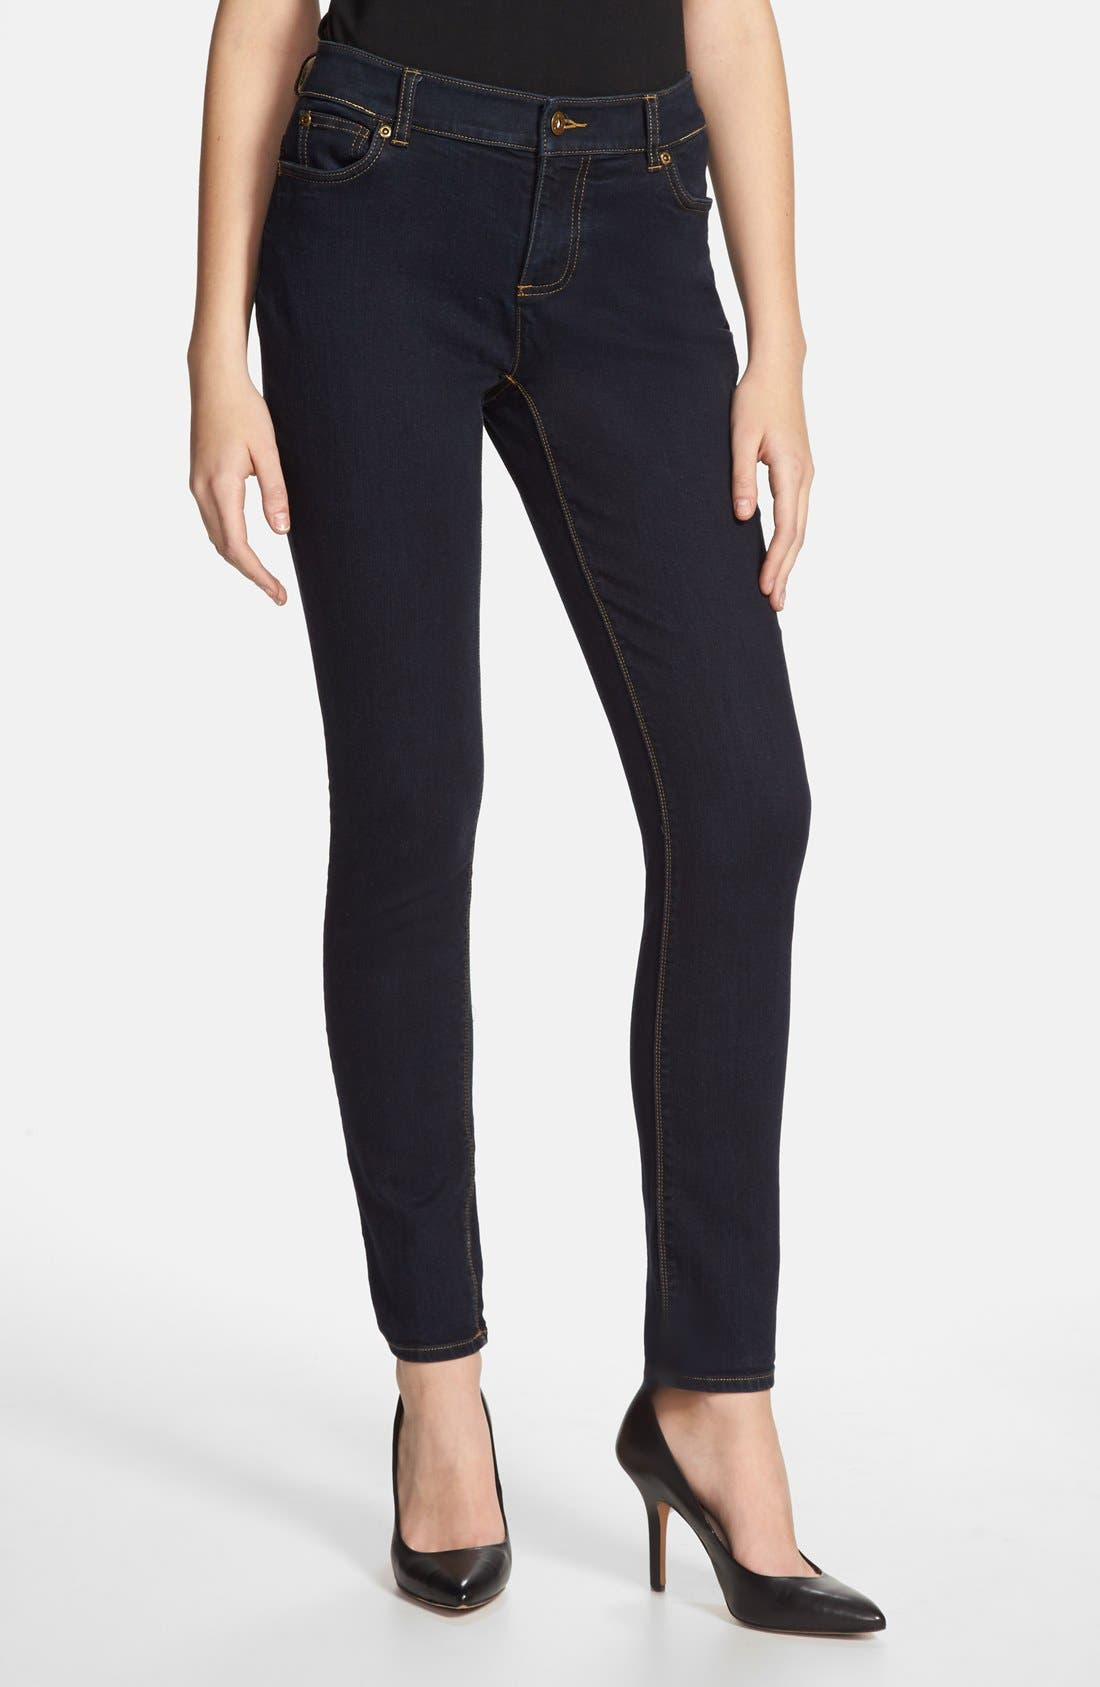 Alternate Image 1 Selected - Vince Camuto Super Stretch Skinny Jeans (Midnight Dark)